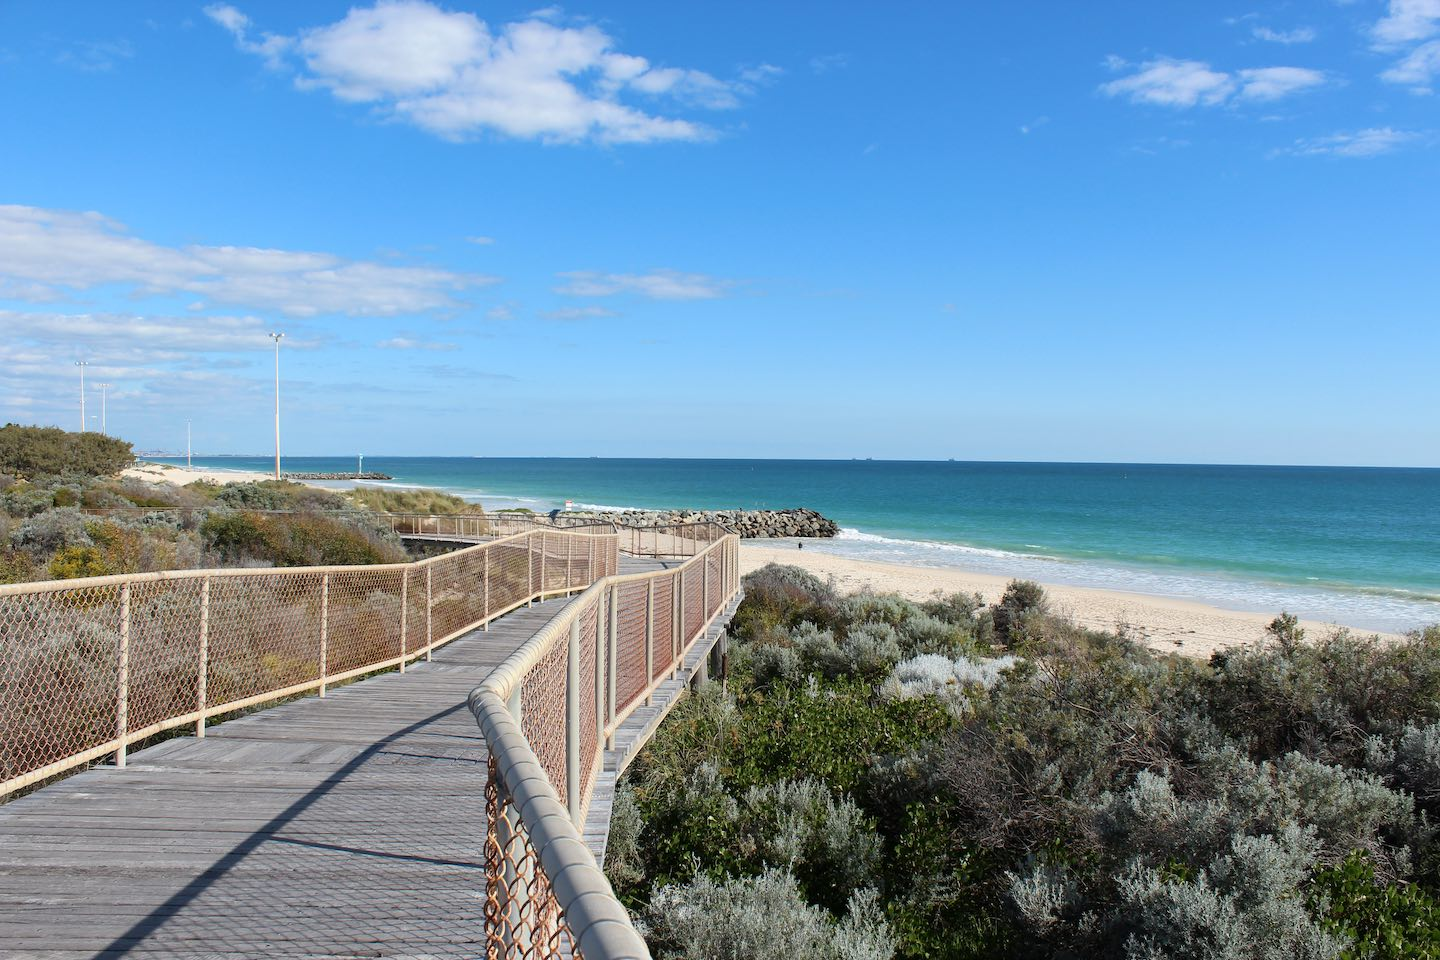 Wooden walkway between Floreat and iconic City beaches Perth Western Australia on a fine afternoon in early spring has scenic views of the Indian Ocean and dune rehabilitation.